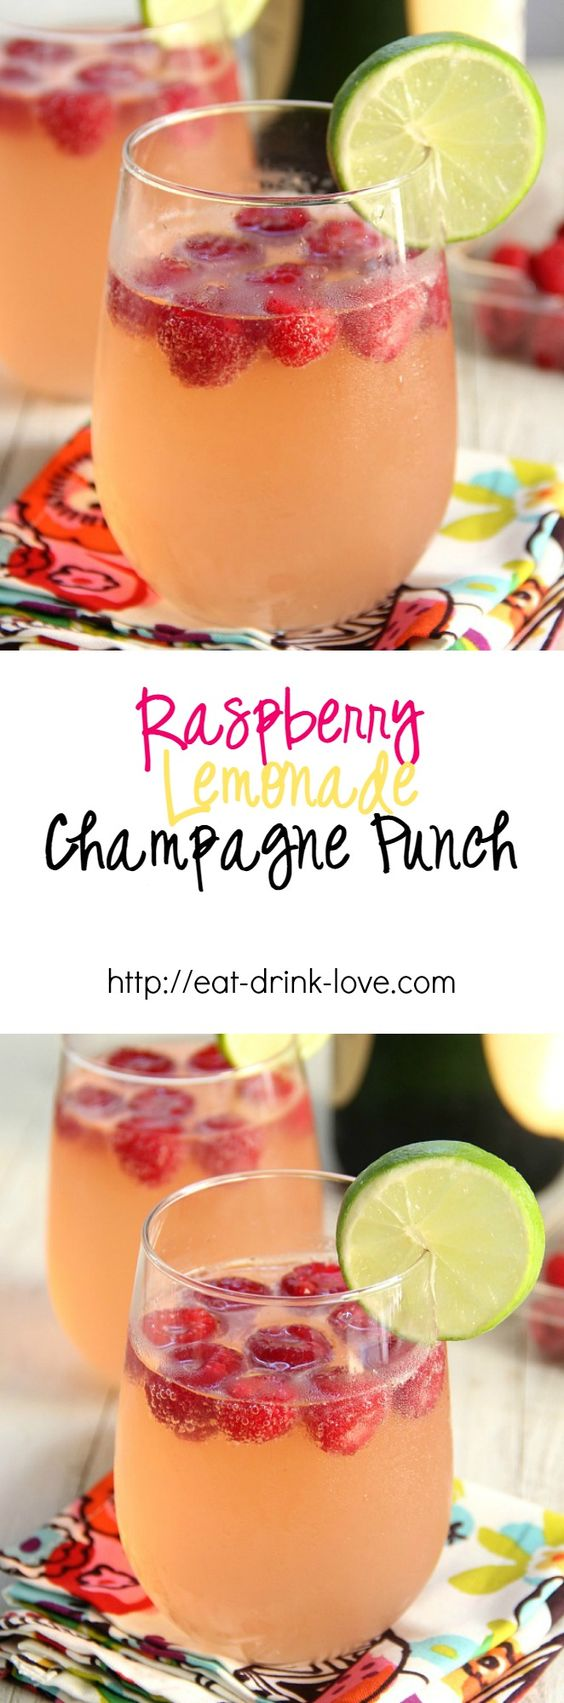 Raspberry Lemonade Champagne Punch